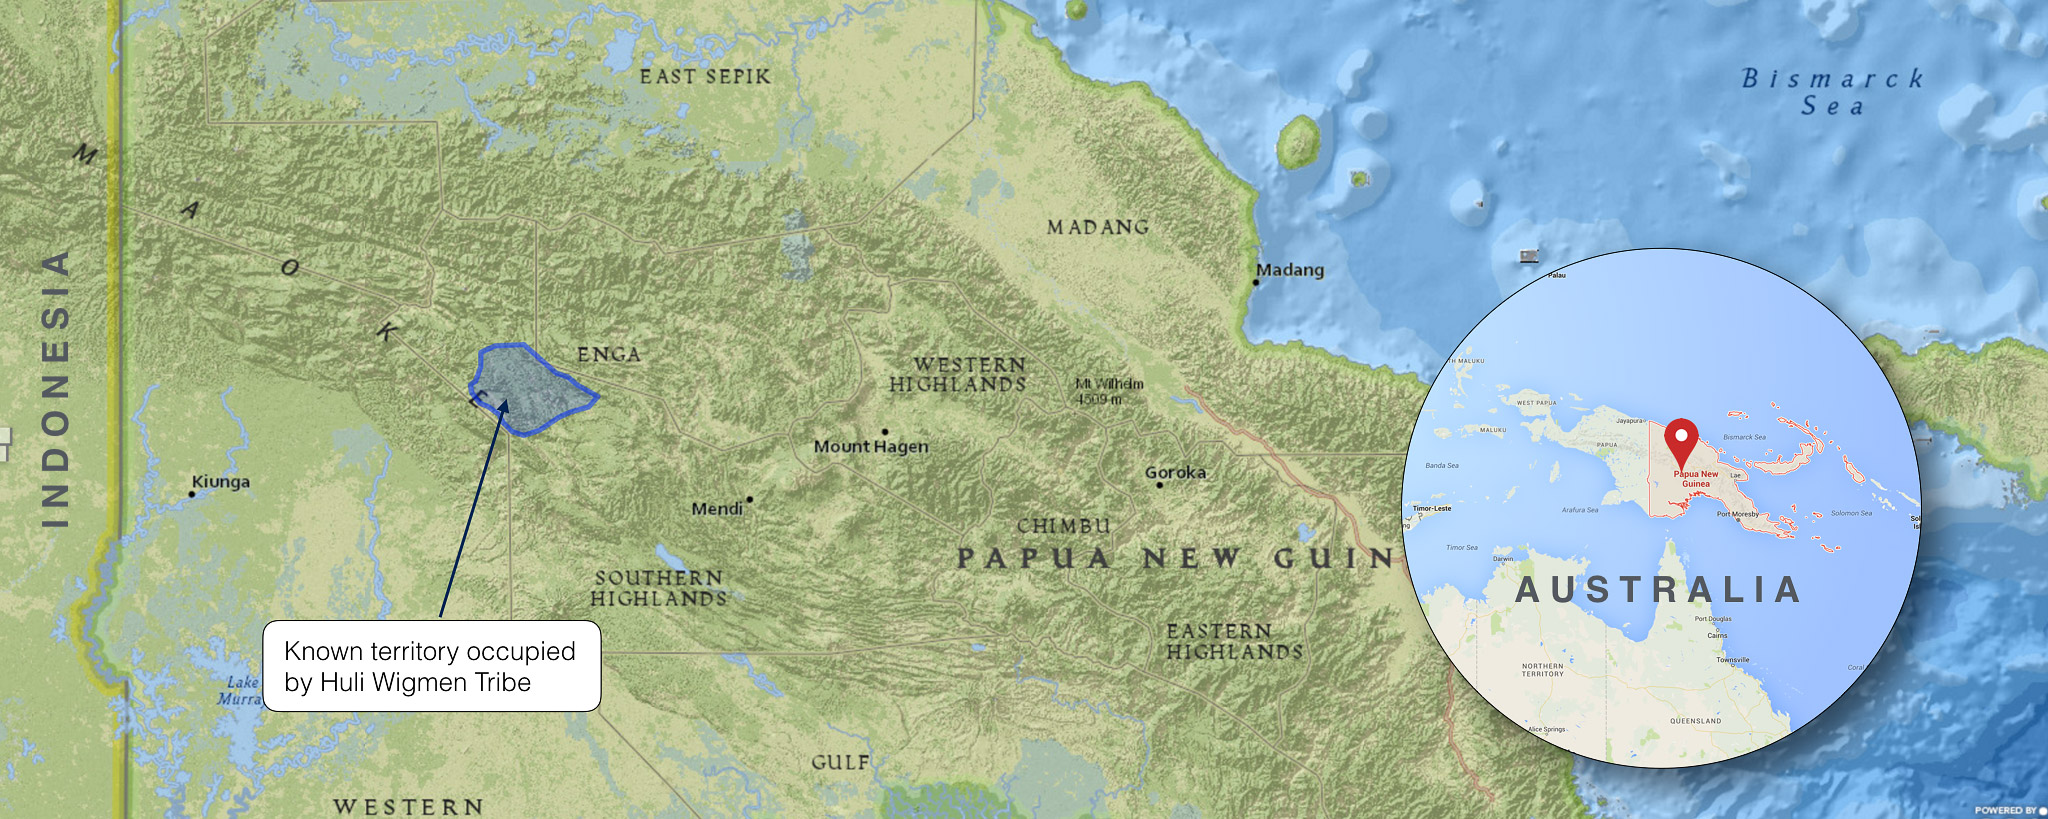 HULI WIGMEN MAP, PAPUA NEW GUINEA